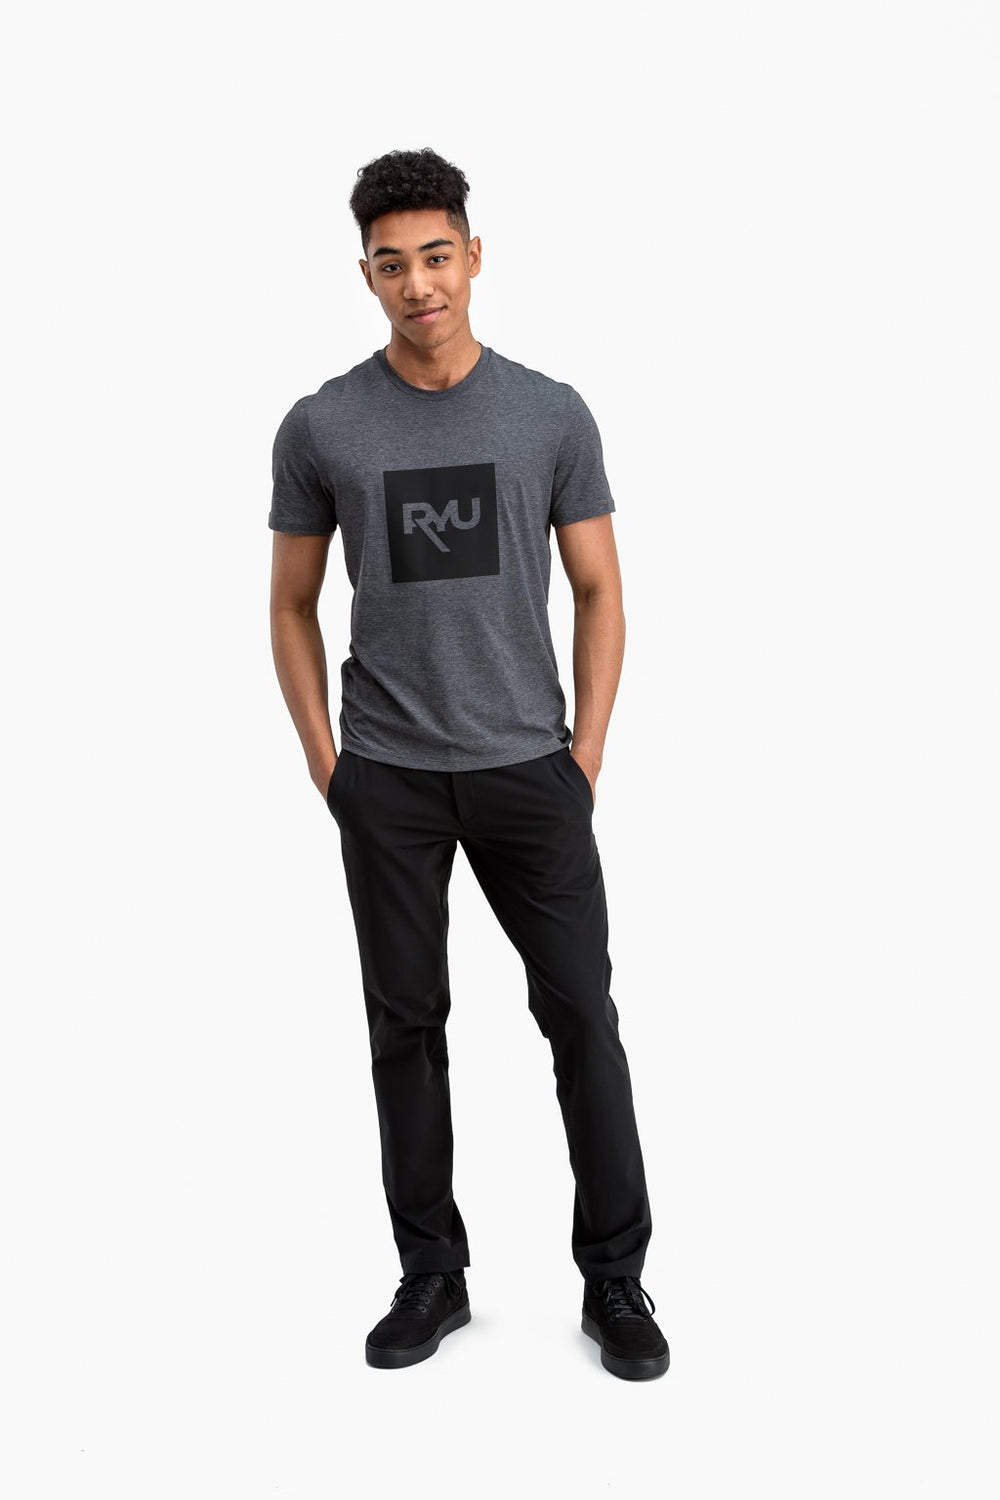 RYU Mens Standard Issue Crew - RYU Graphic in Asphalt Heather